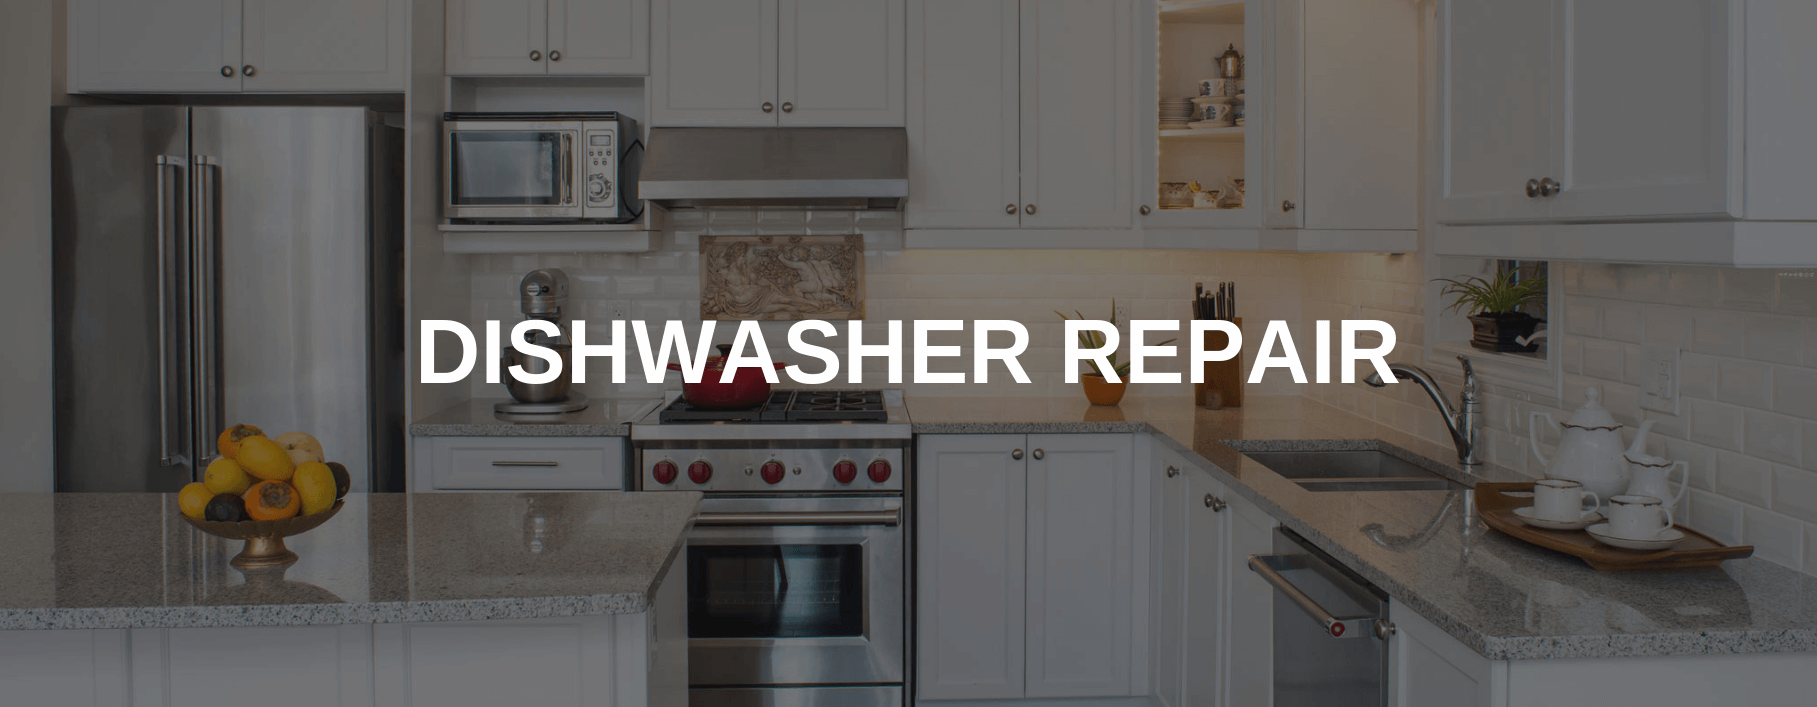 dishwasher repair roseville